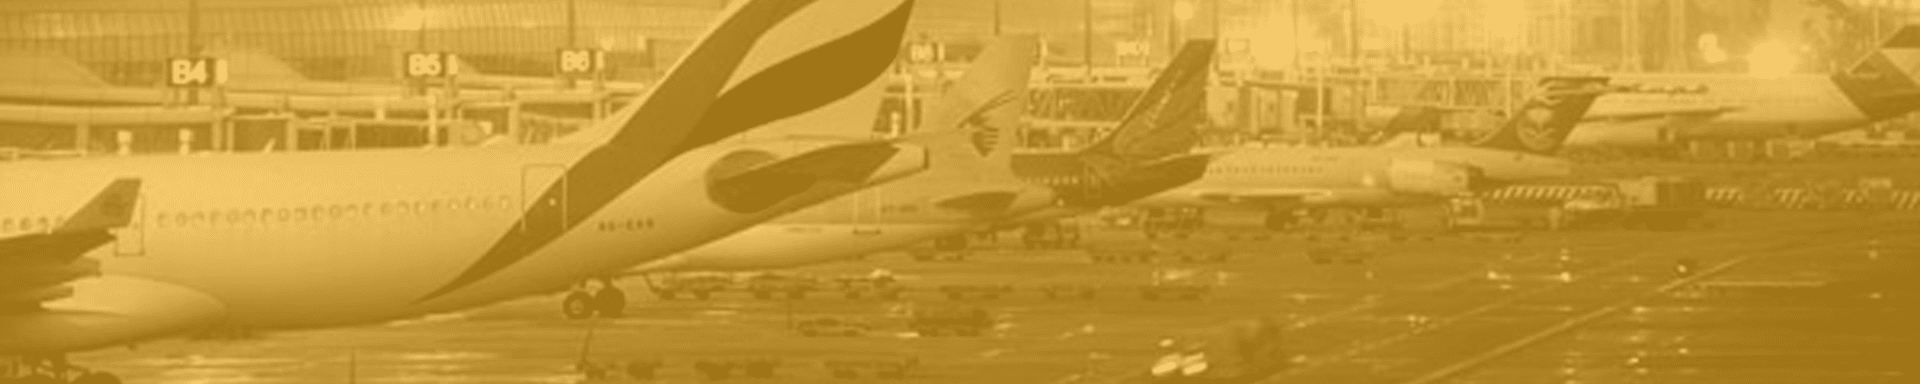 civil_airport_temp_header